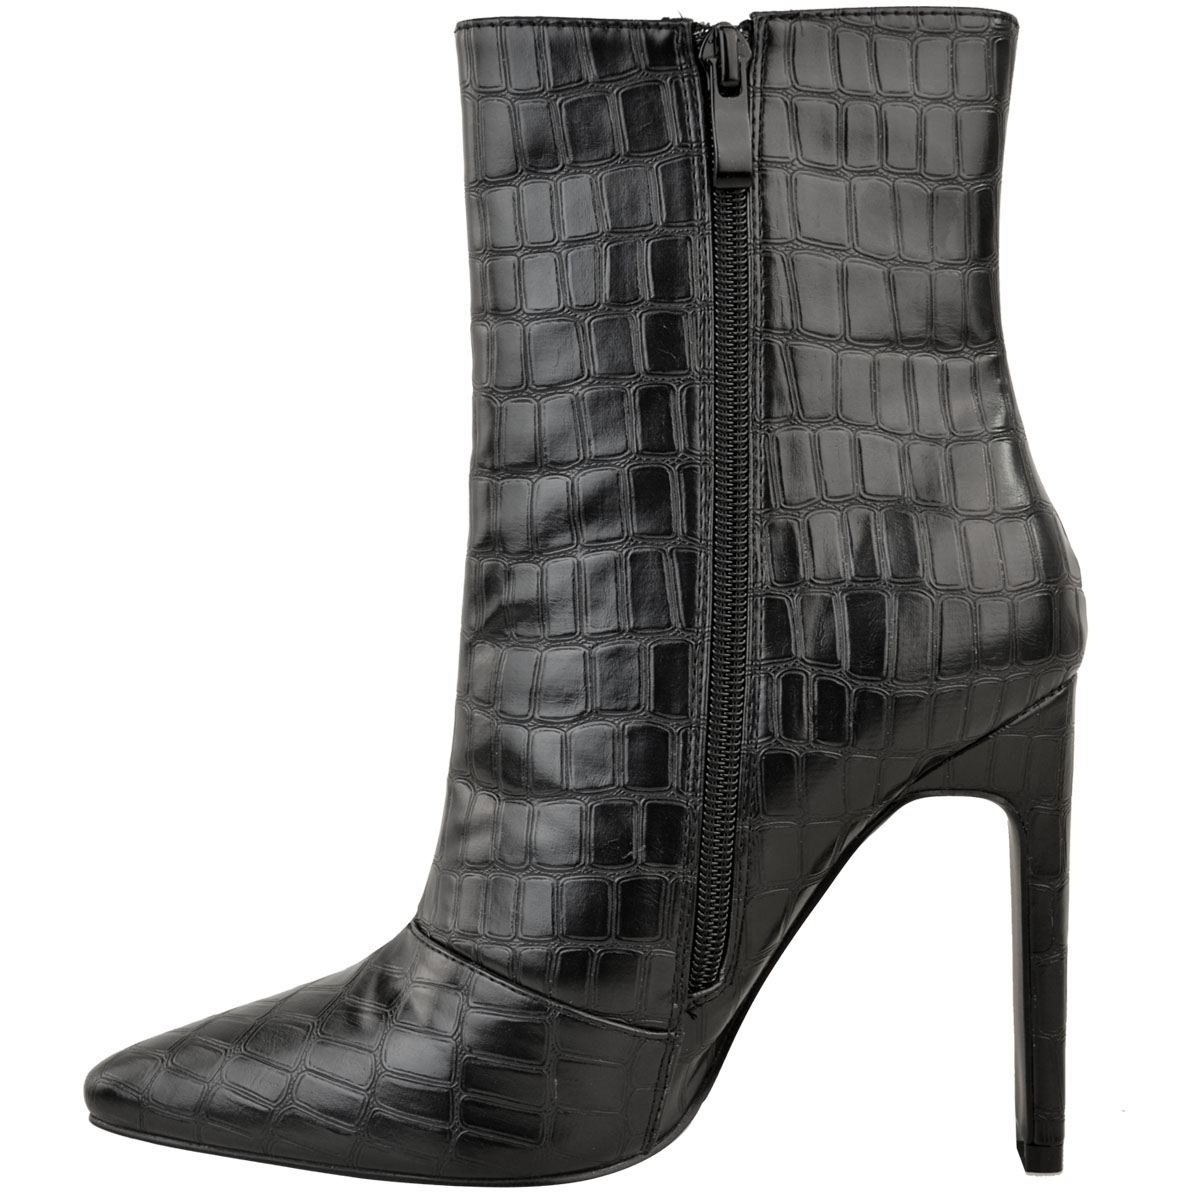 f0ebed50f36d Womens Block High Heel Black Croc Ankle Boots Smart Work Office Size ...